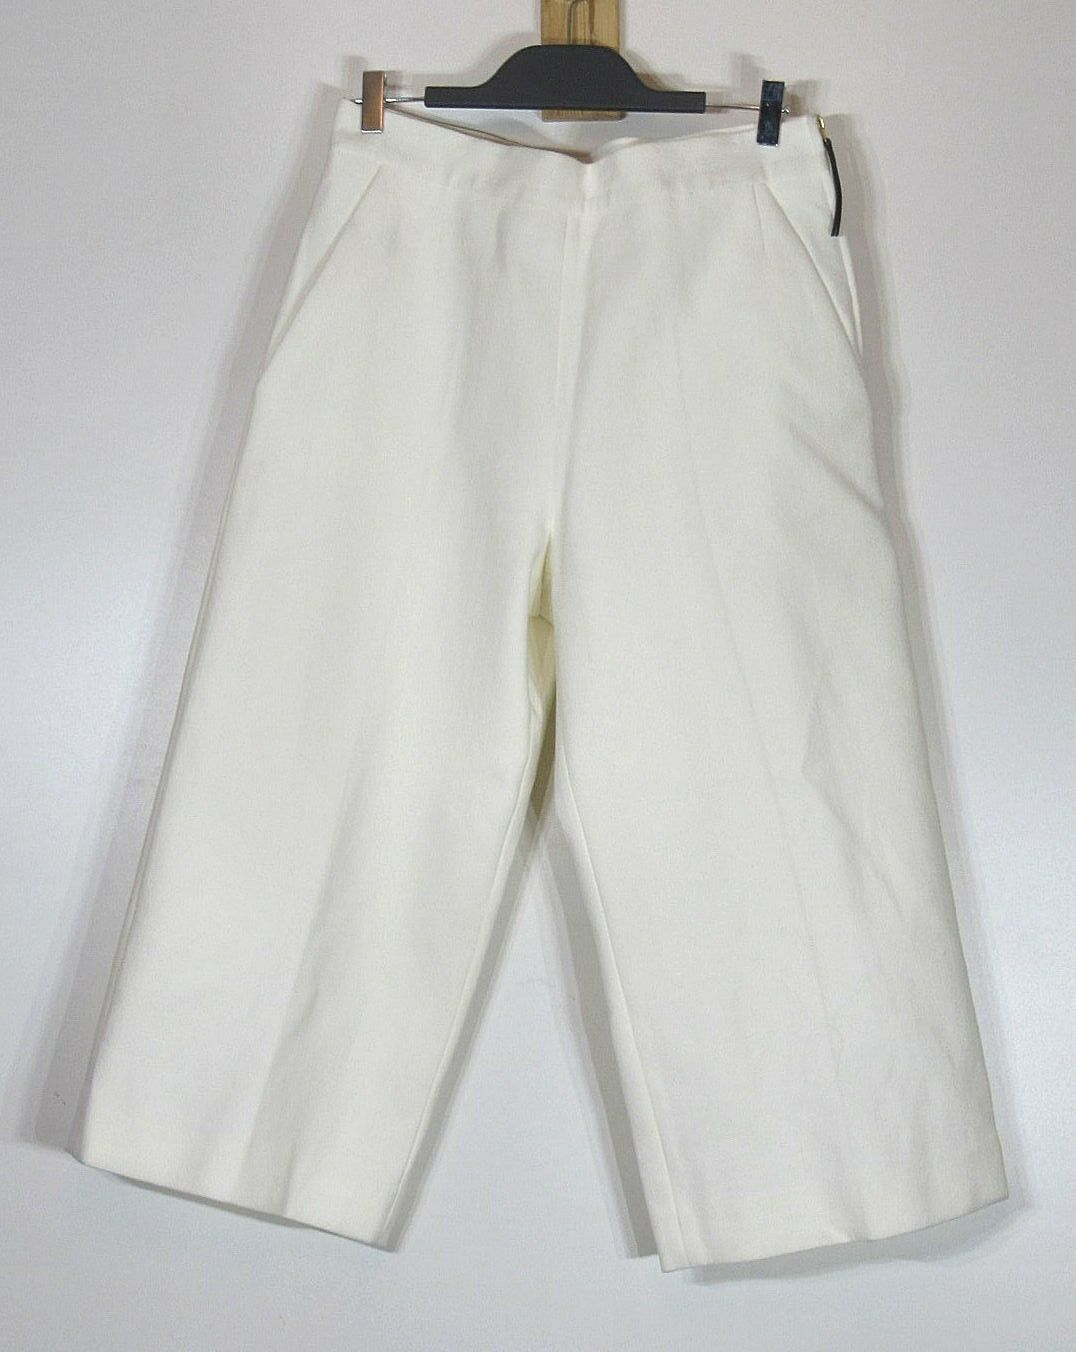 Marni cropped trousers, Off White, Side Zip Size It 42, US 6, 38 FR NWOT